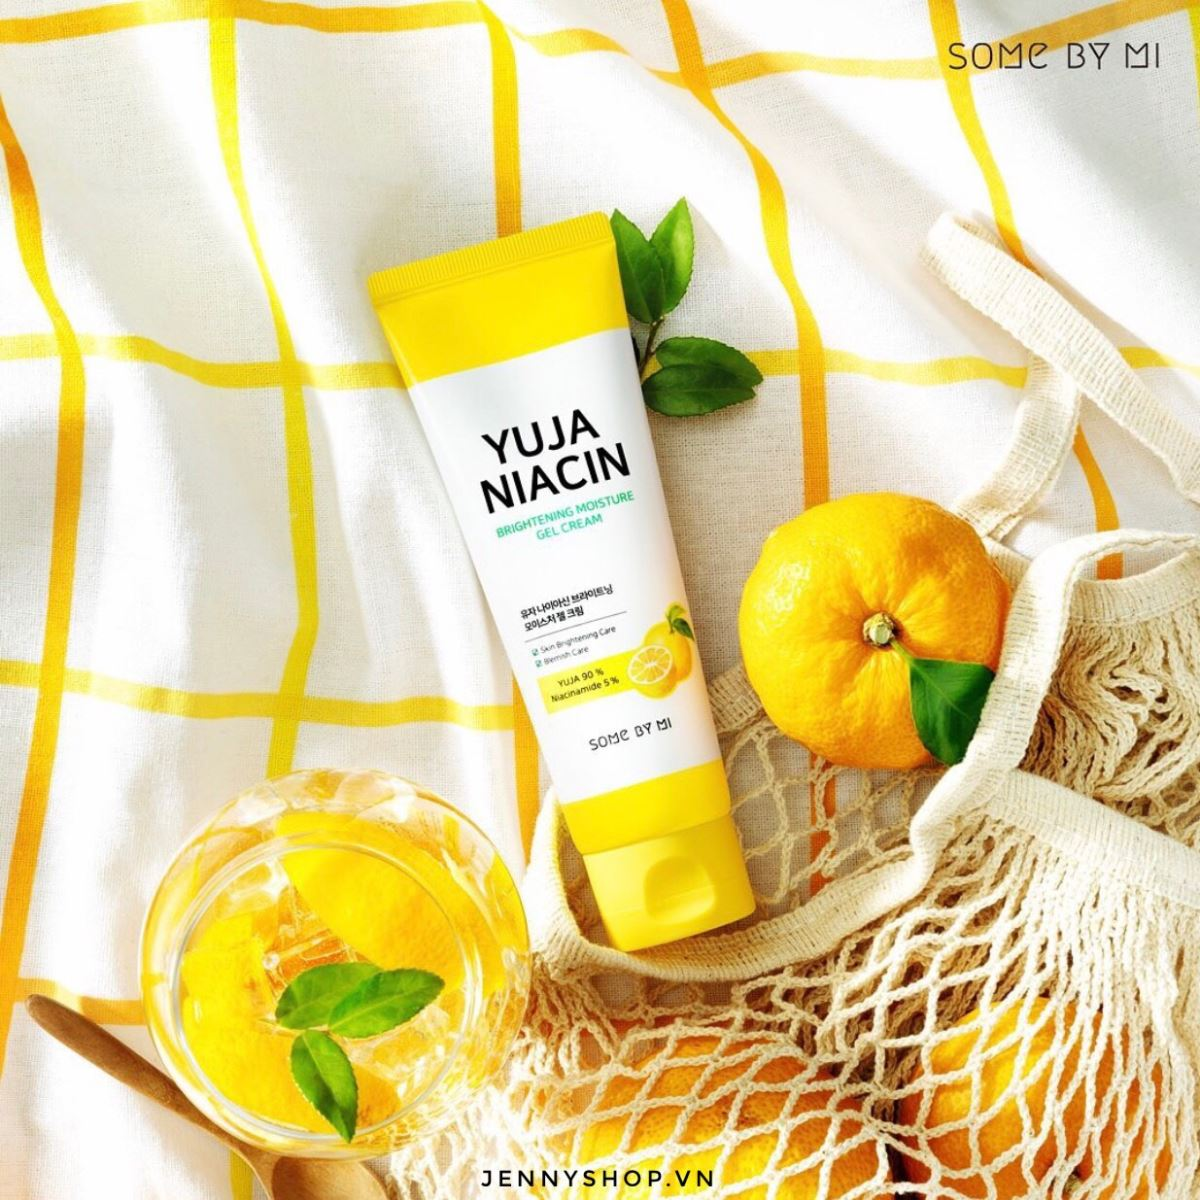 Kem Dưỡng Dạng Gel Some By Mi Yuja Niacin Brightening Moisture Gel Cream